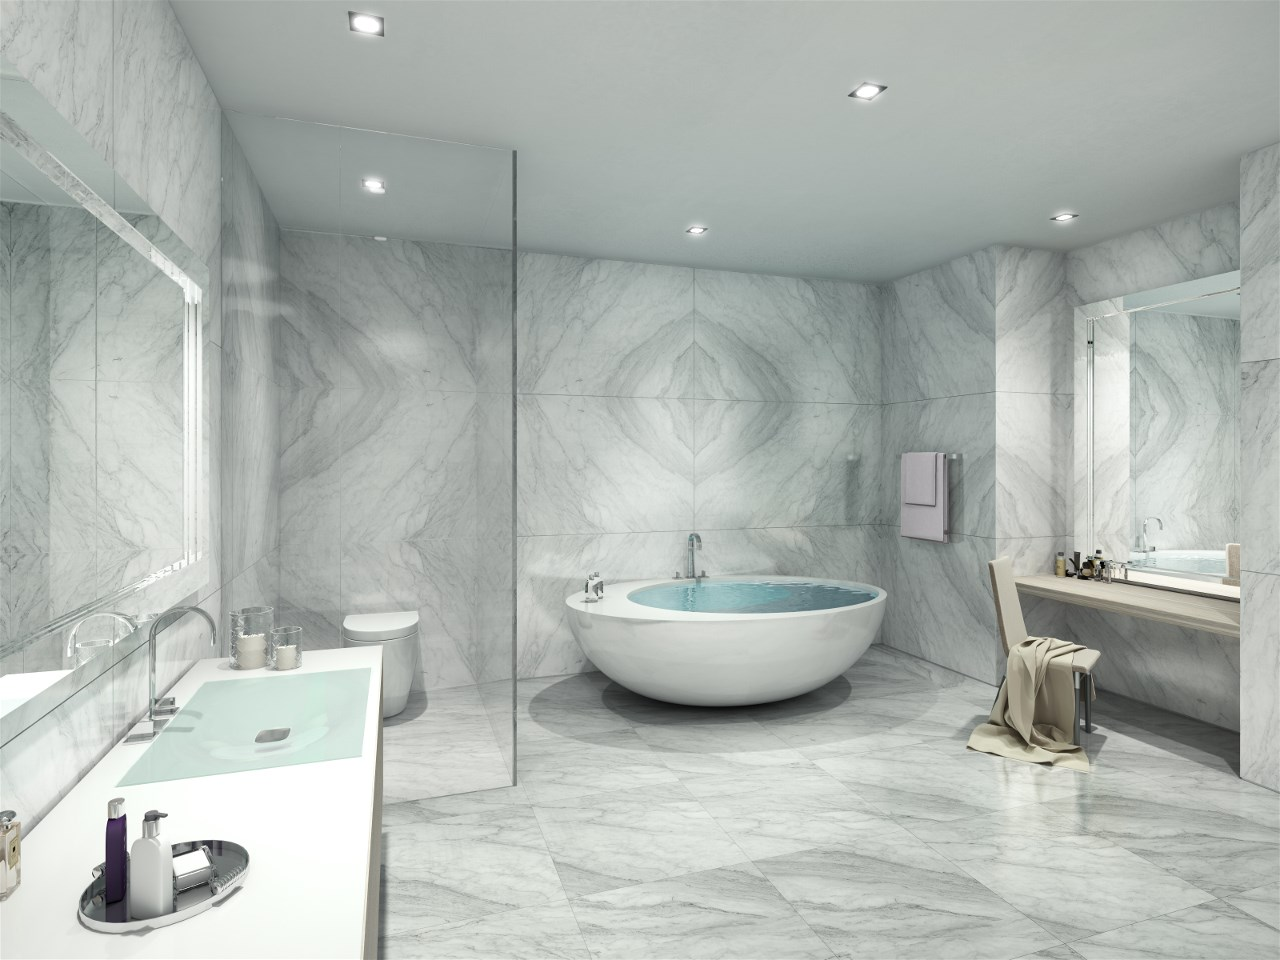 Turnberry-OC-01-UnitD_MasterBathroom-03.jpg